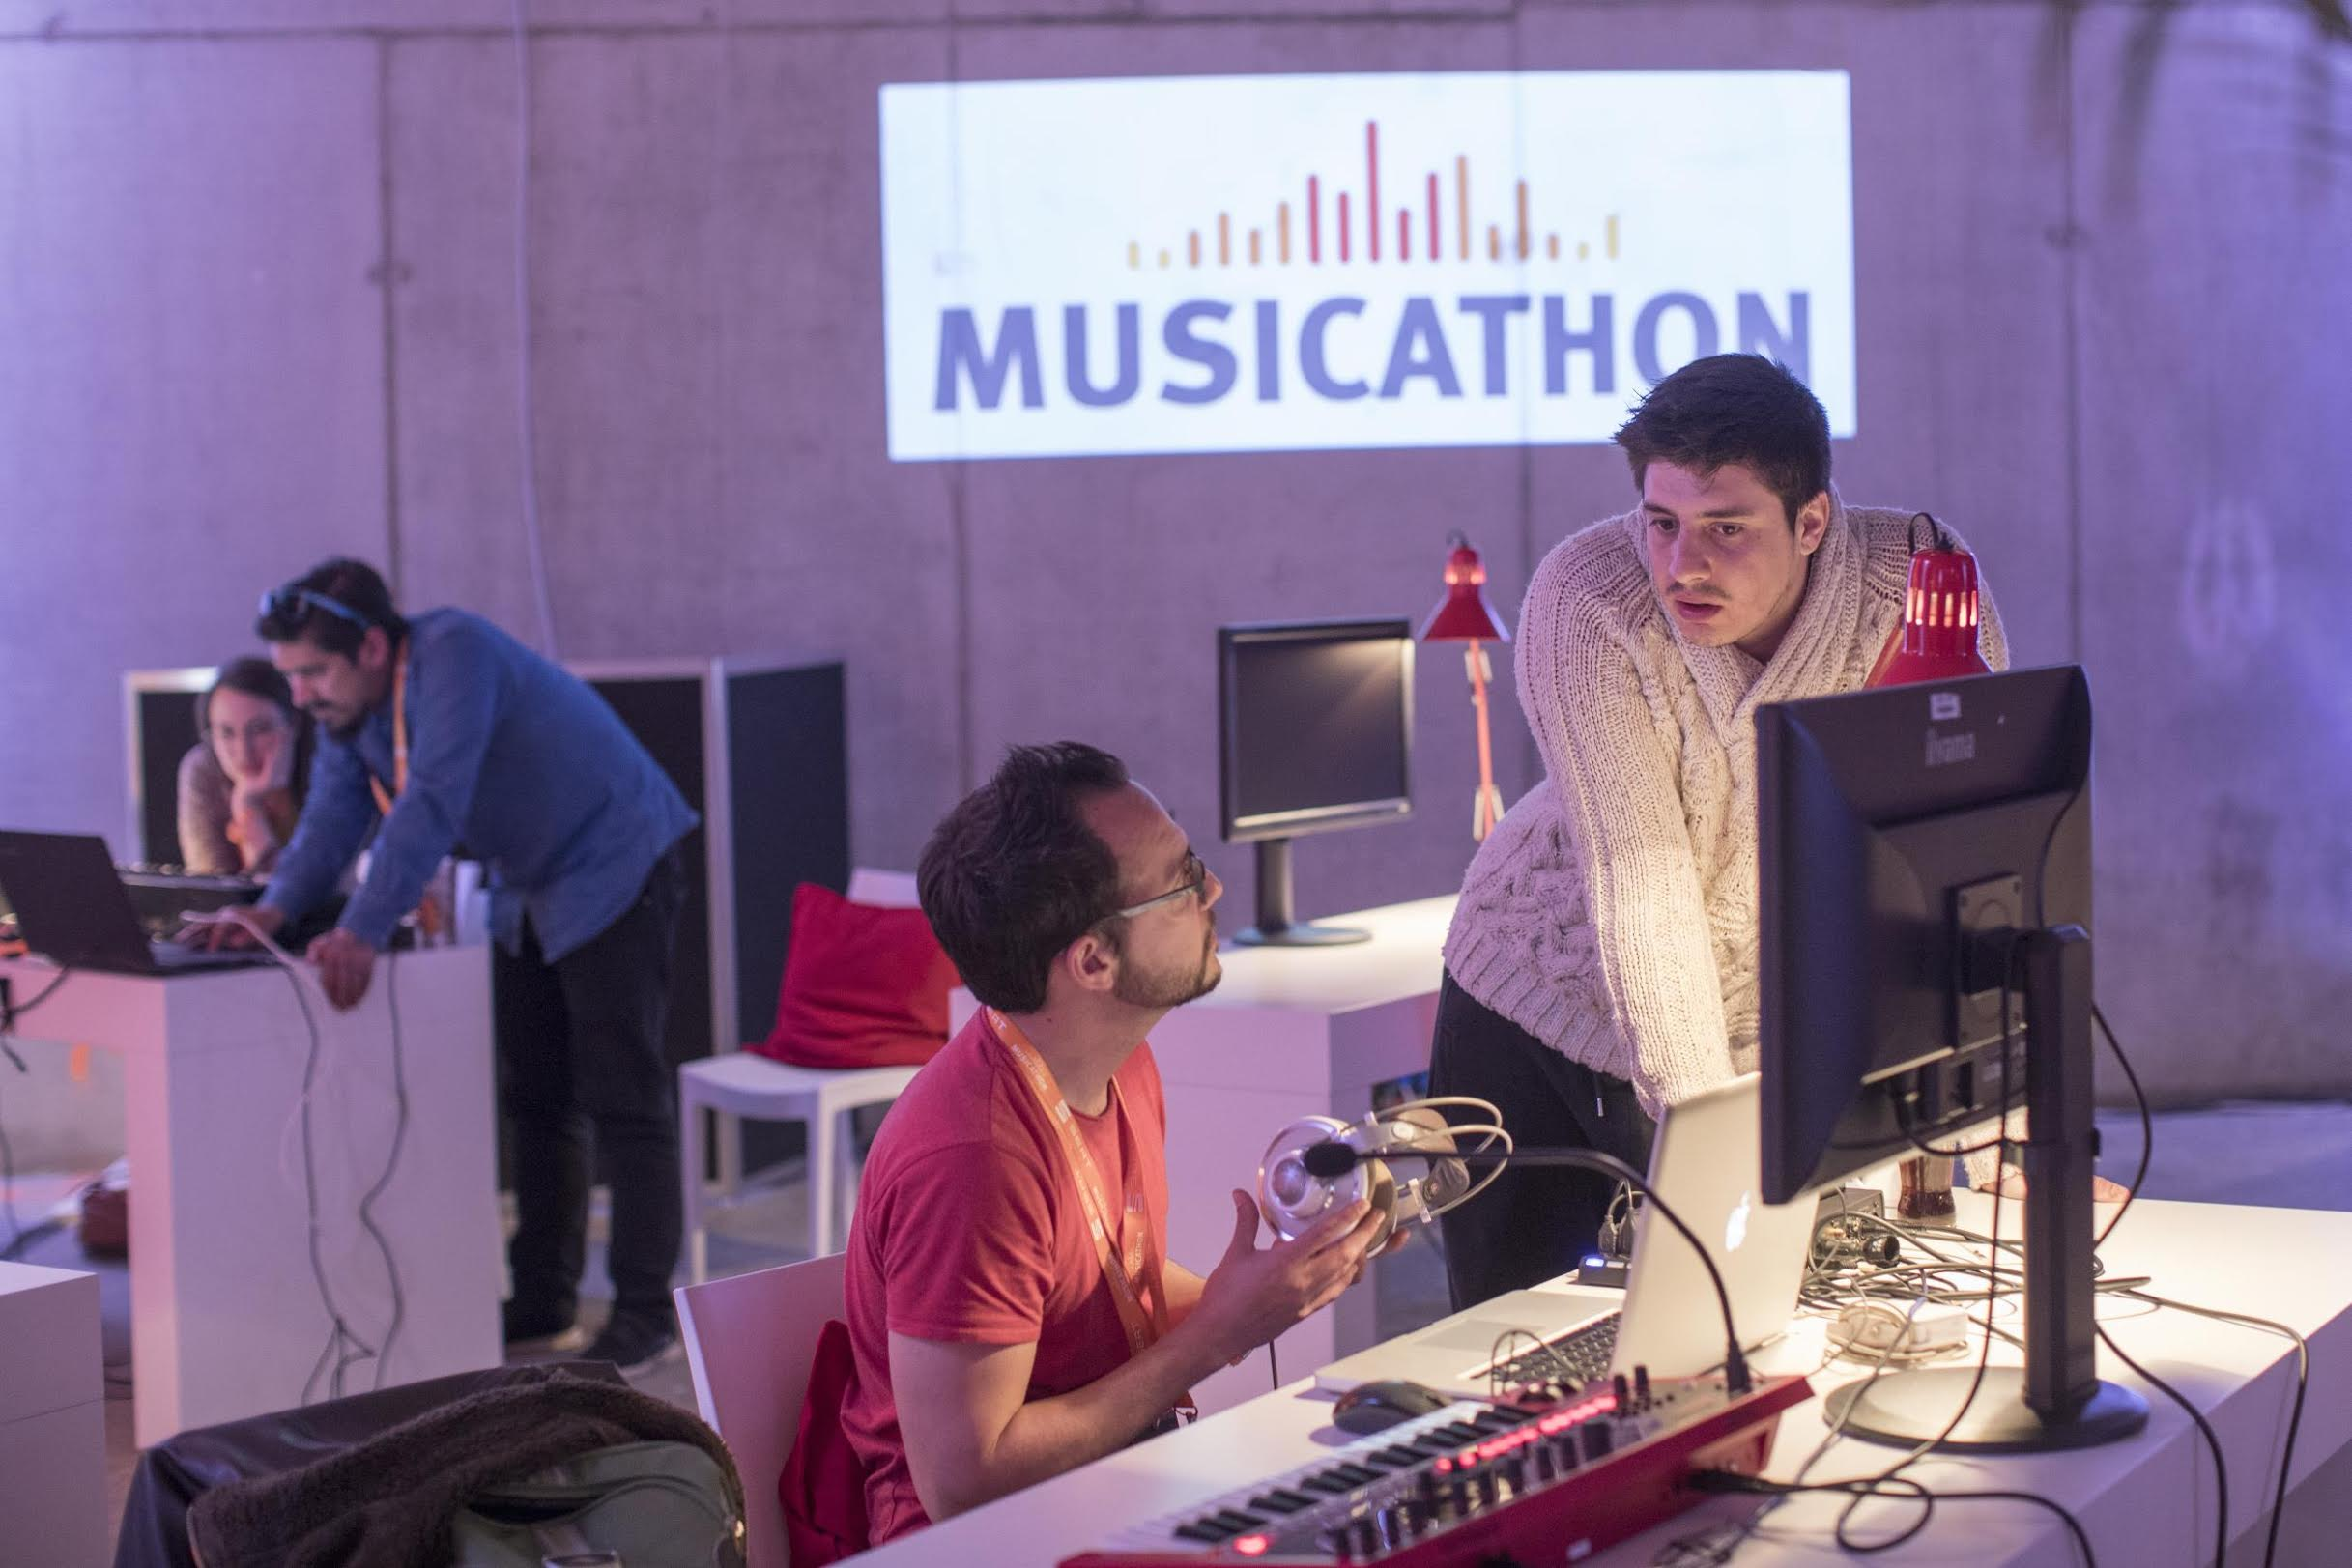 The SEAT Musicathon ends on a high note